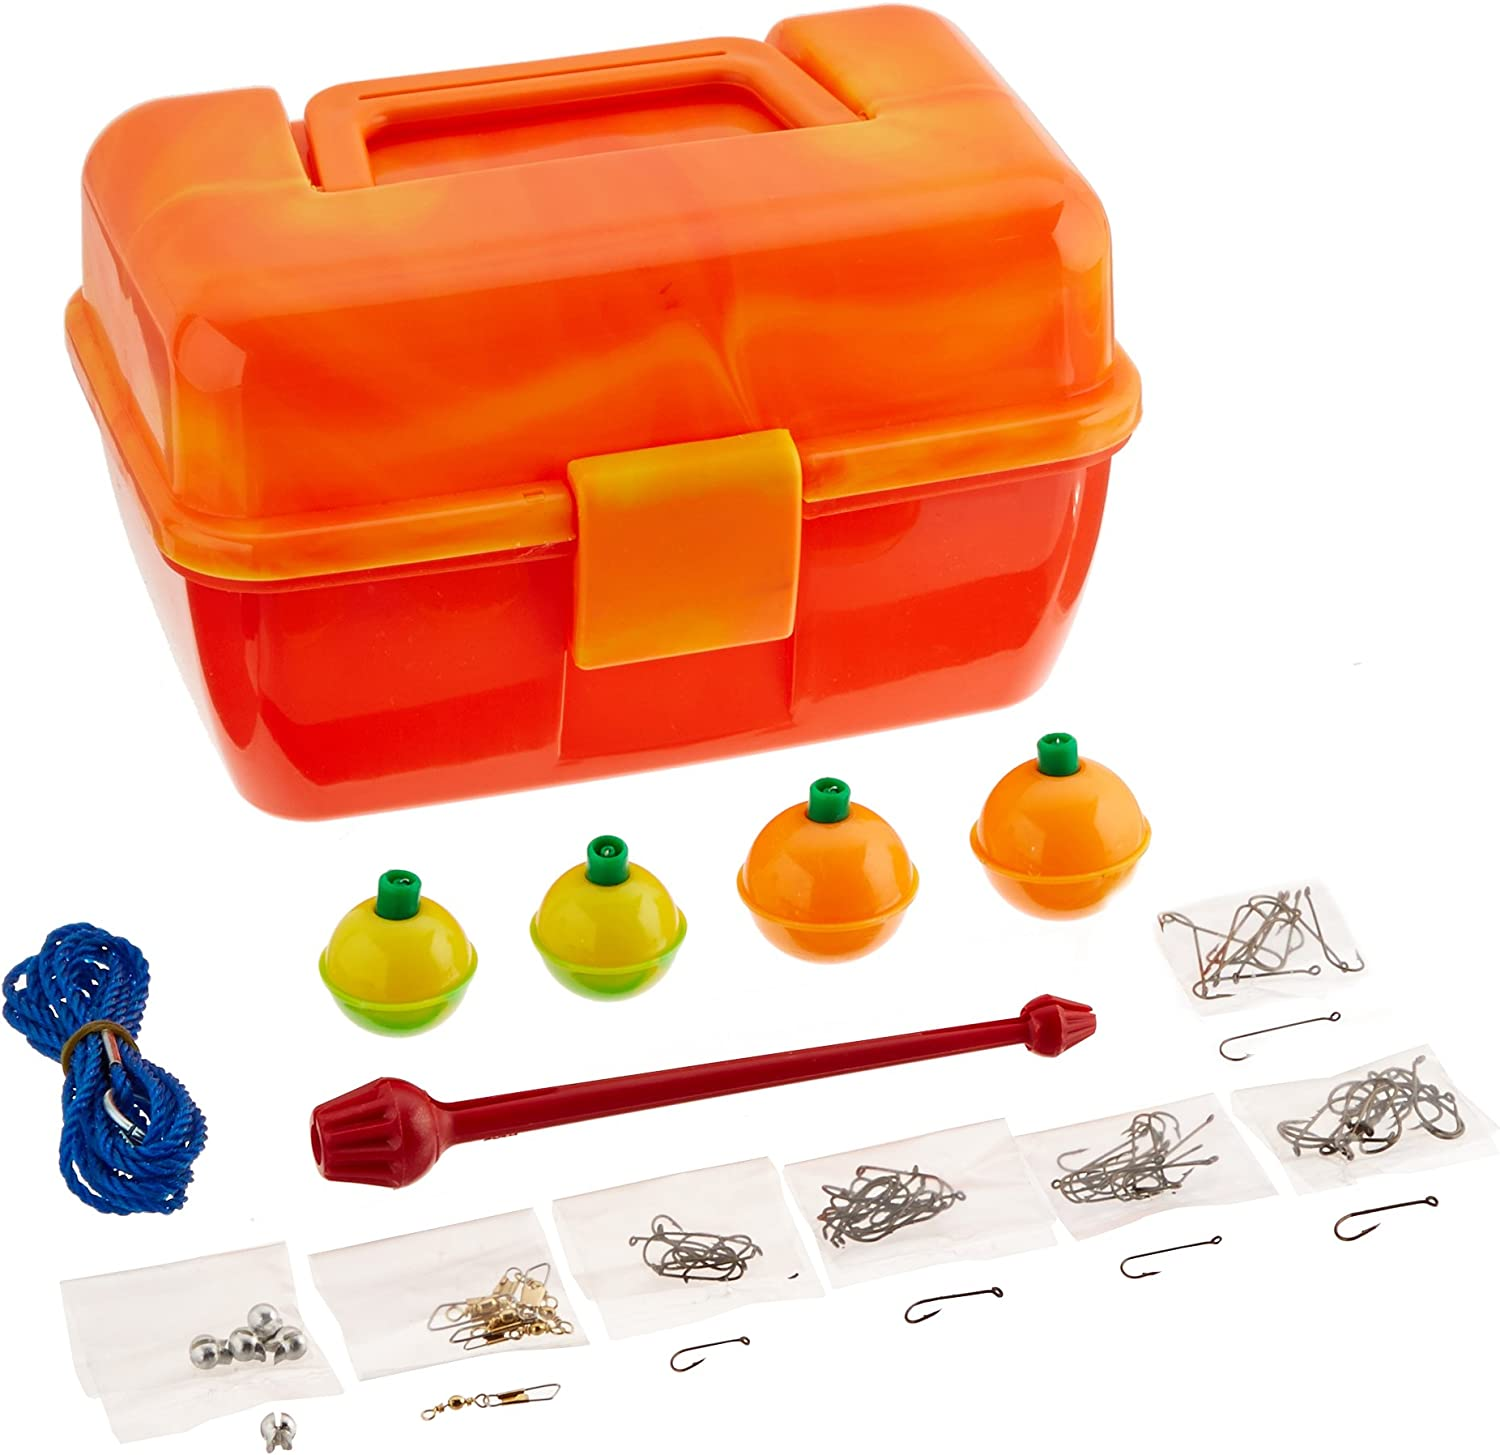 South Bend Worm Gear Tackle Box piece may vary 88 Color Bombing new Overseas parallel import regular item work